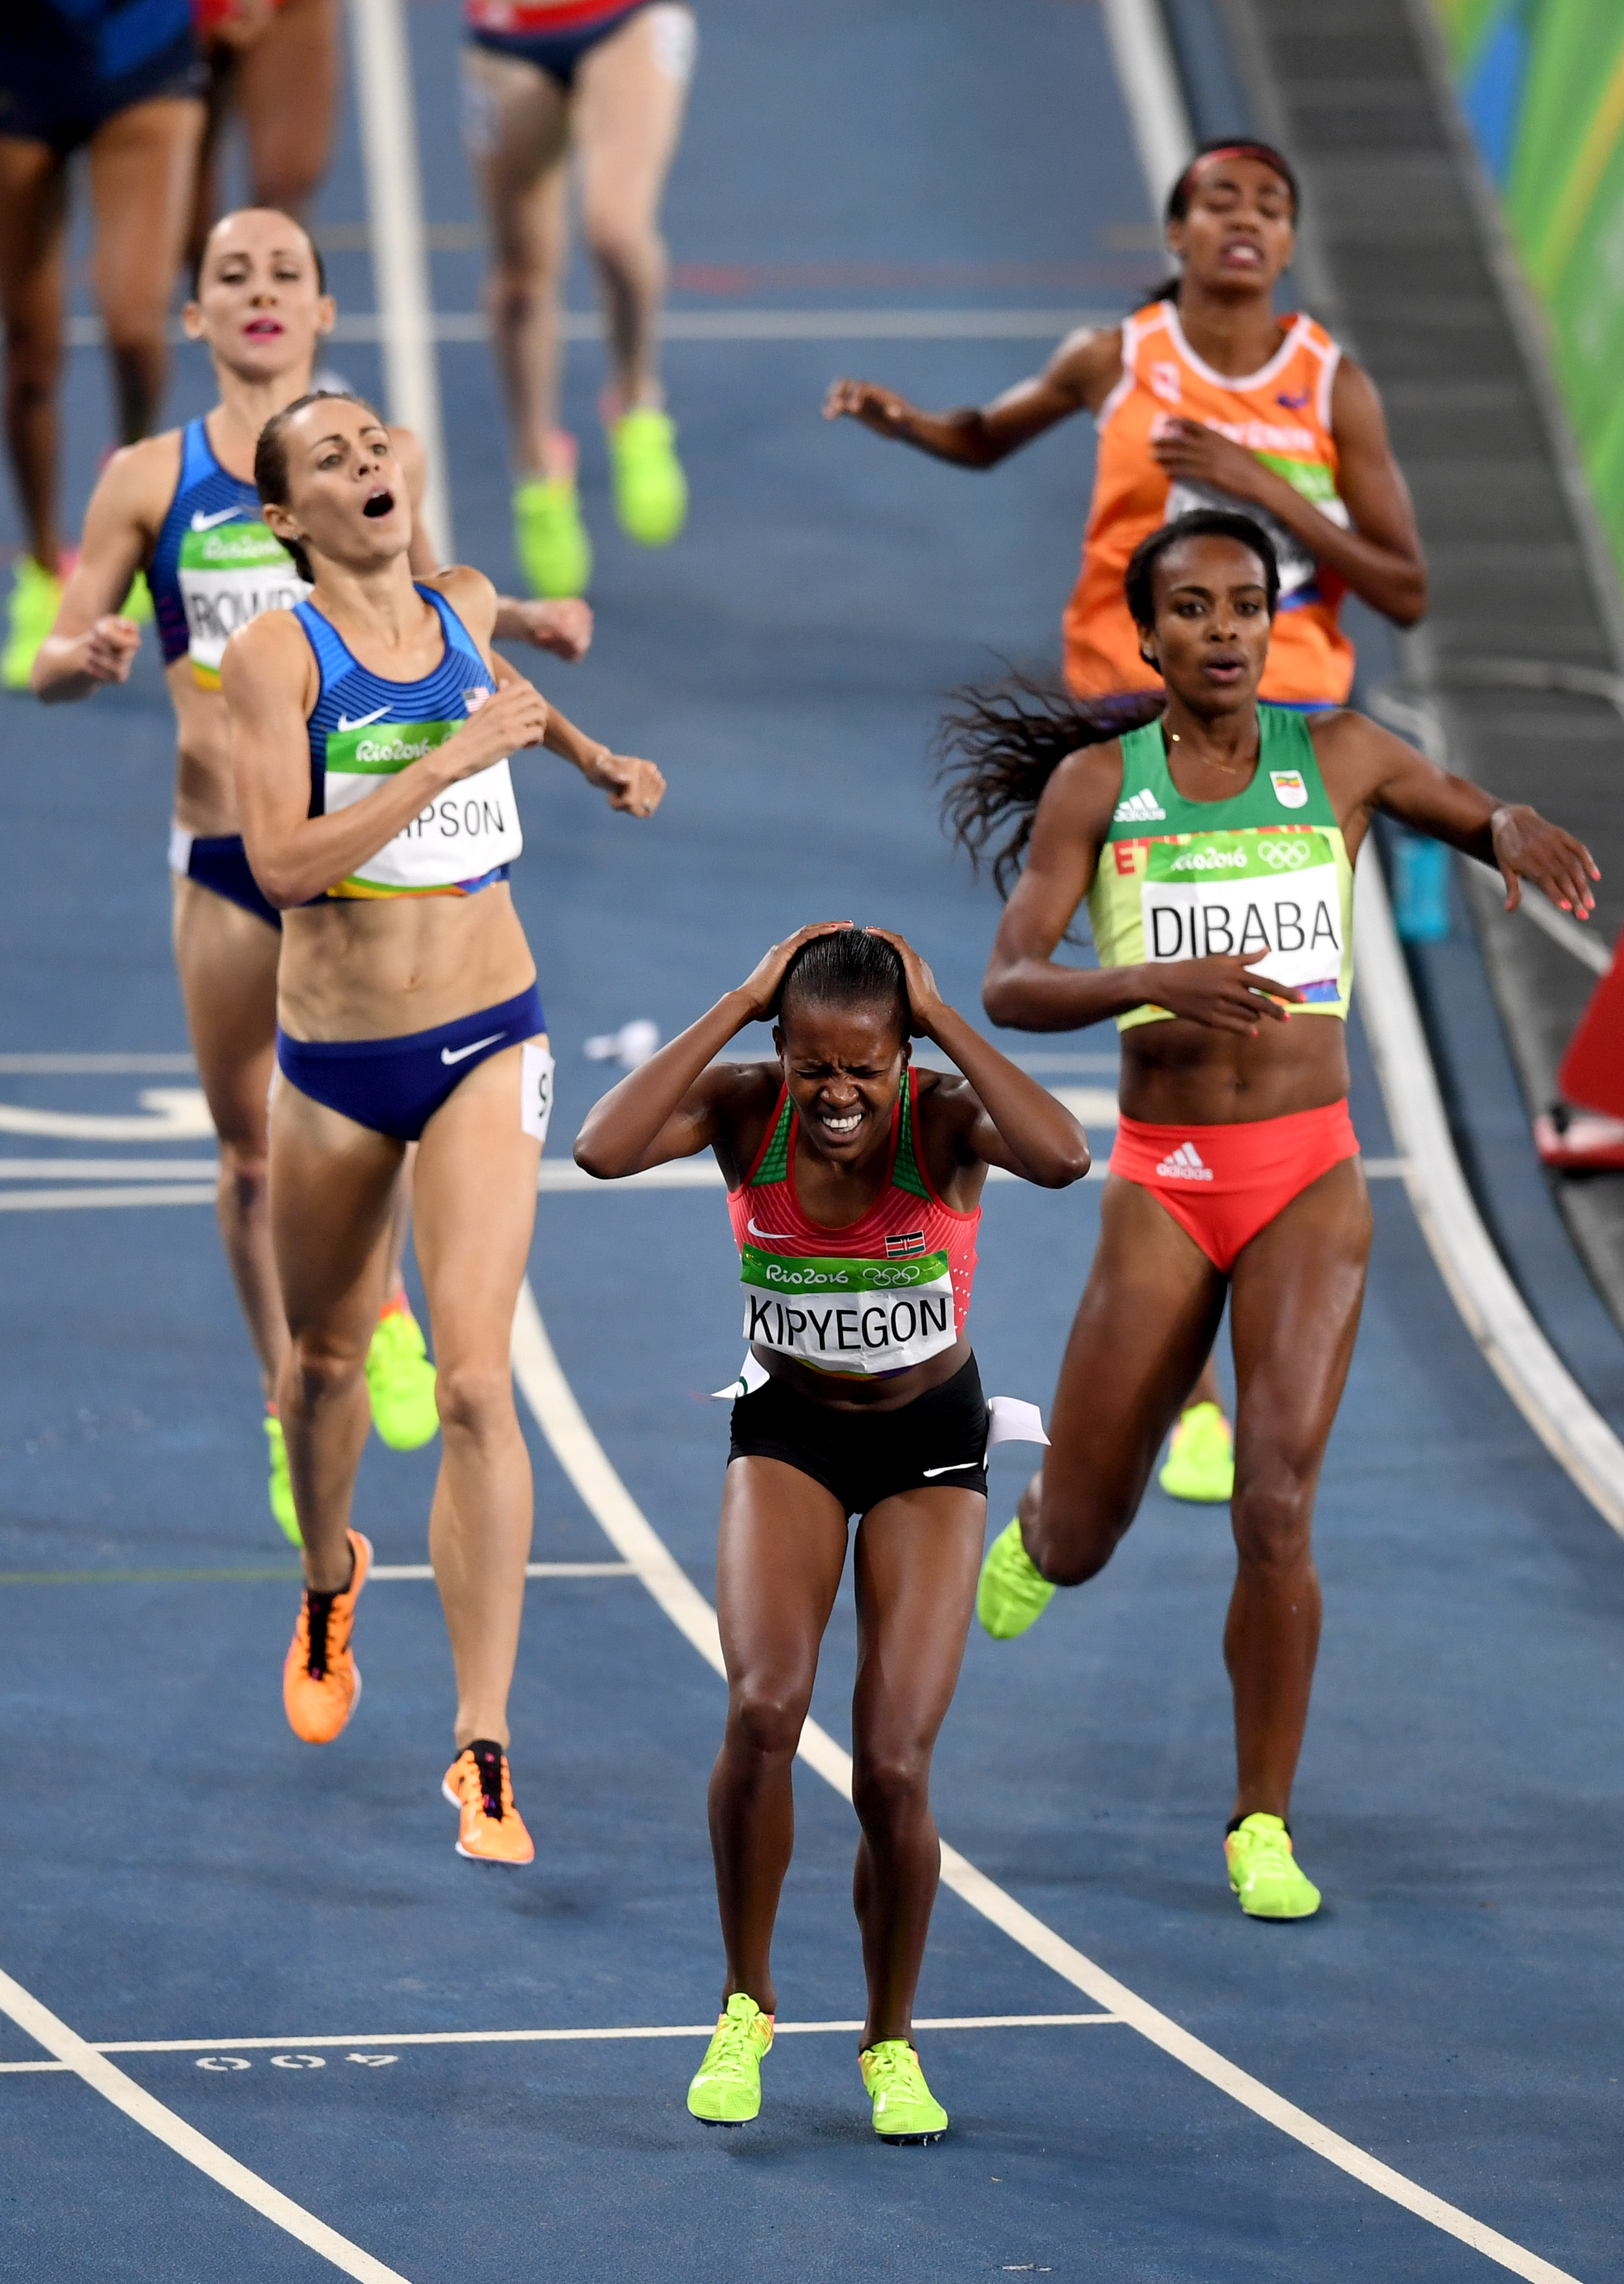 Kenya's Faith Chepngetich Kipyegon (center) reacts after she won ahead of Ethiopia's Genzebe Dibaba (right) and USA's Jenny Simpson the Women's 1500m Final during the athletics event at the Rio 2016 Olympic Games at the Olympic Stadium in Rio de Janeiro on August 16, 2016. (credit: PEDRO UGARTE/AFP/Getty Images)